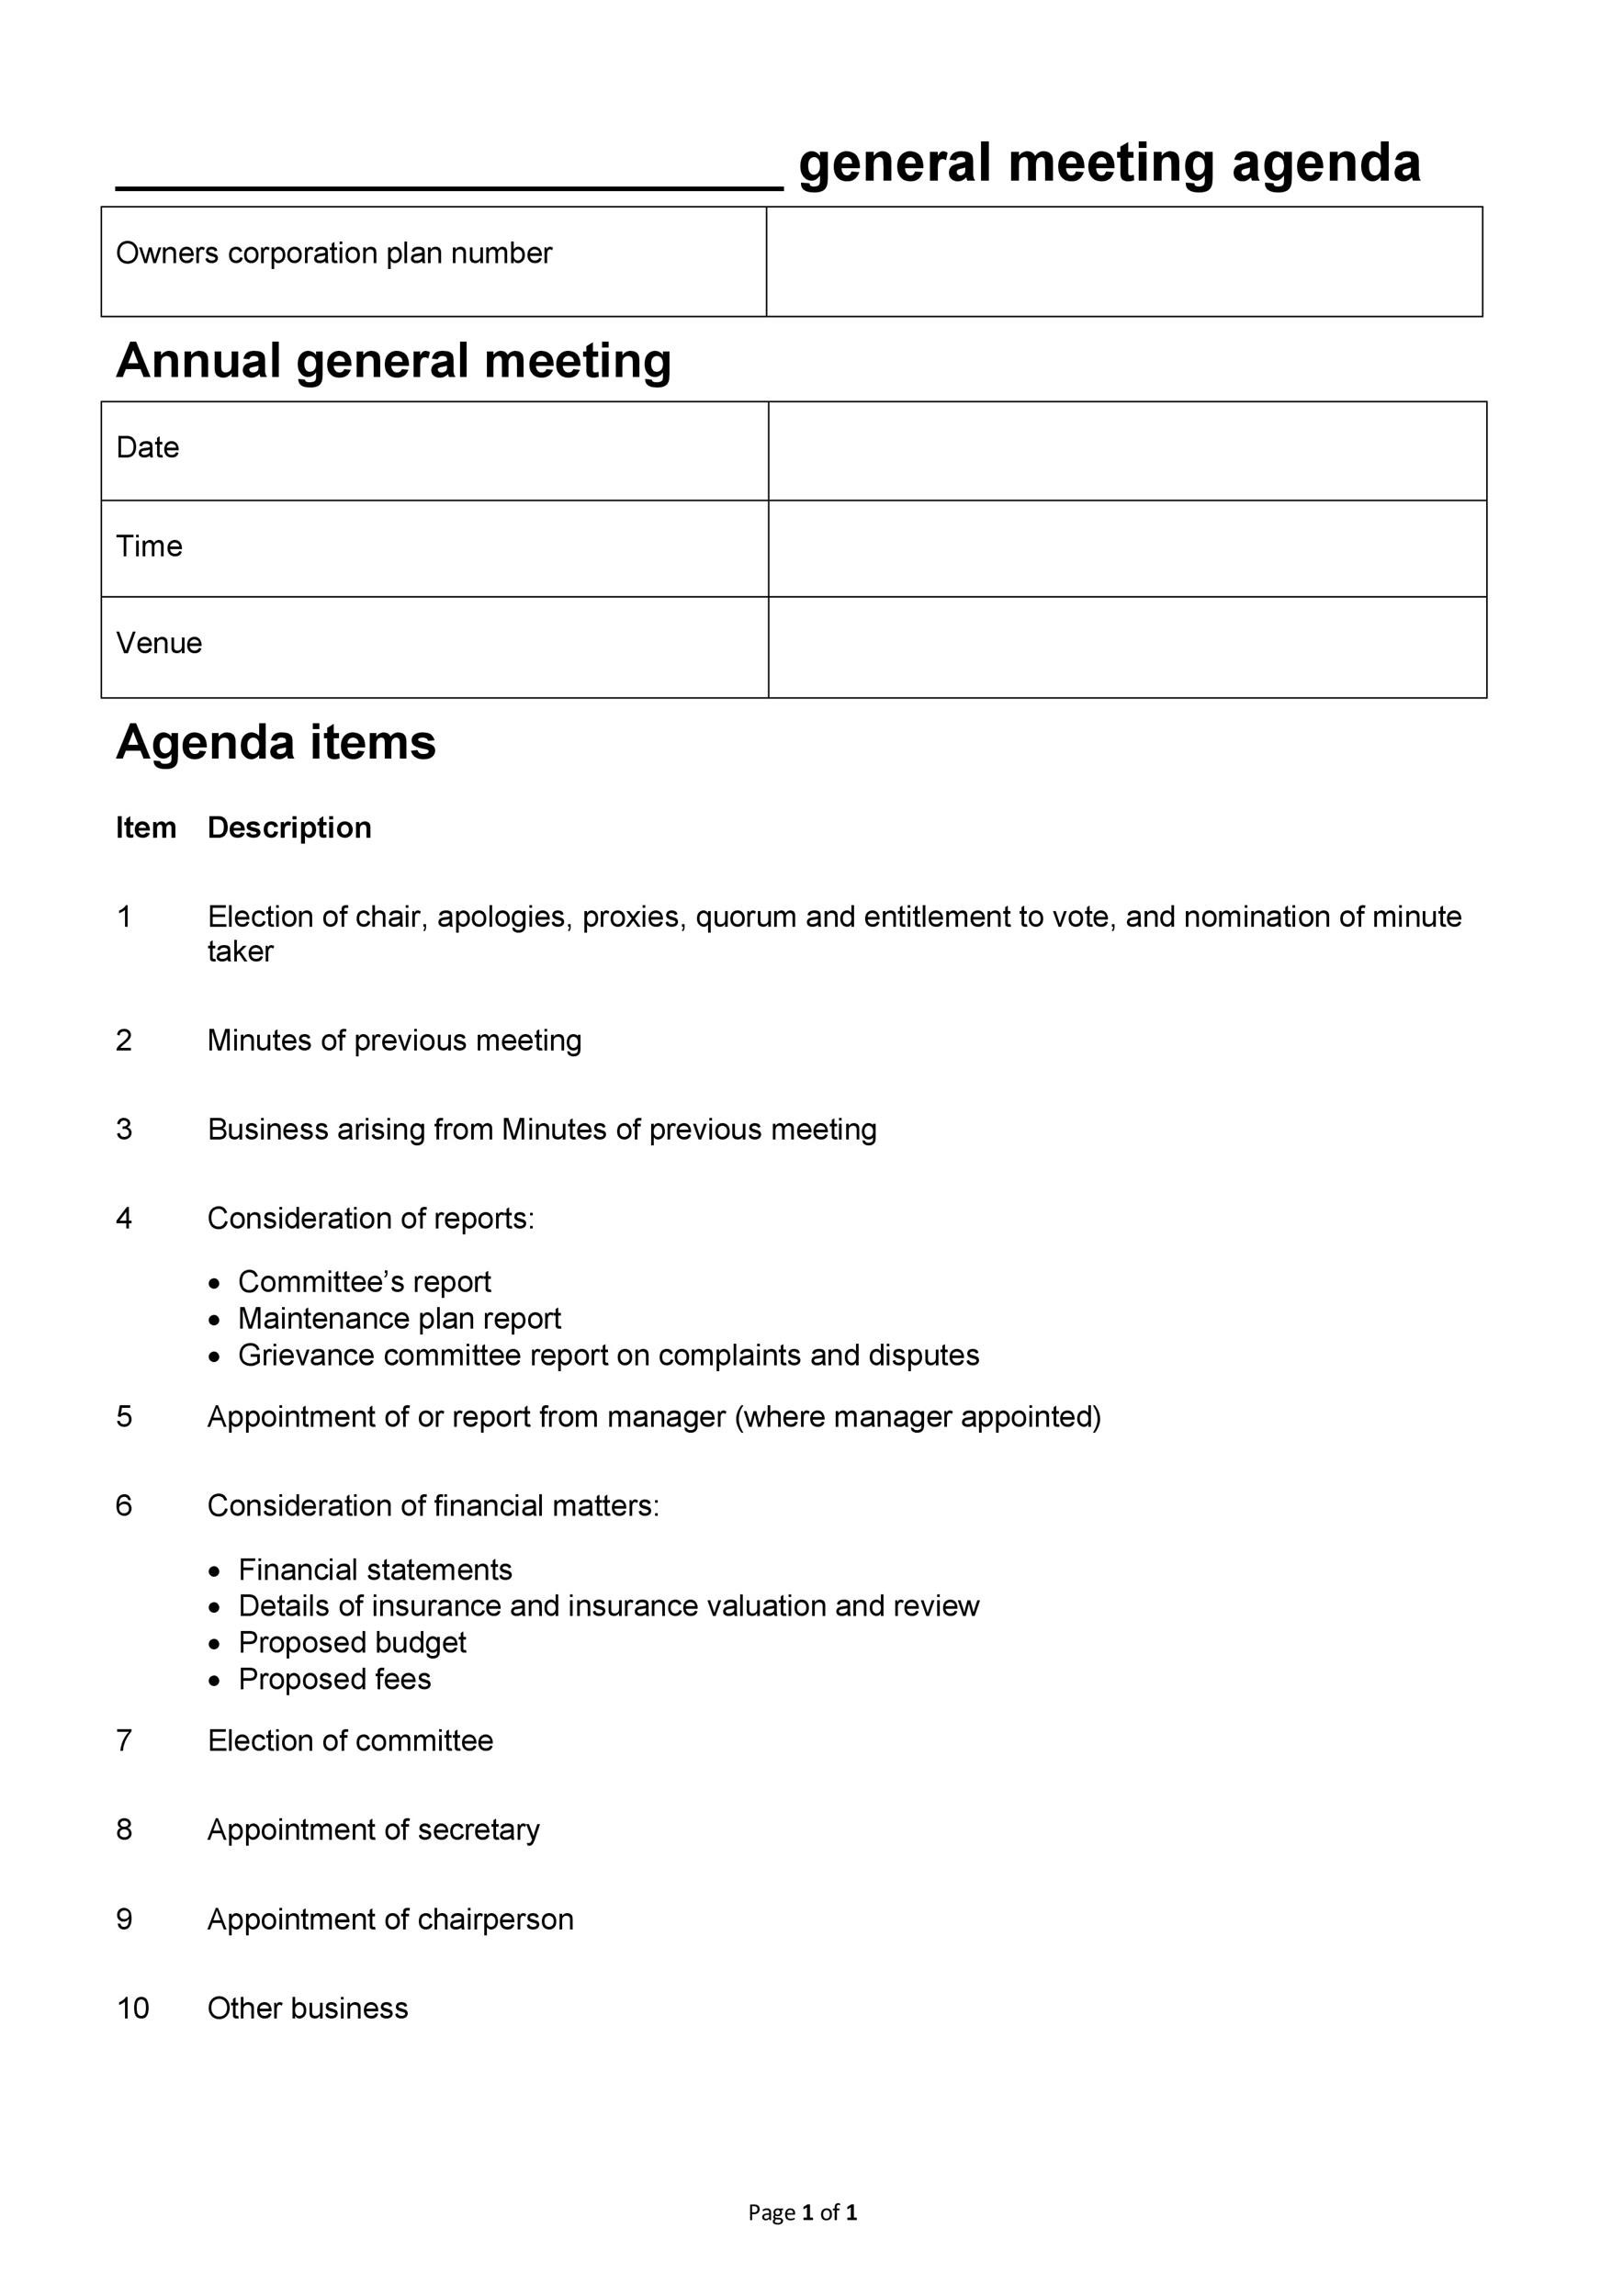 Meeting Agenda Samples  Effective Meeting Agenda Templates